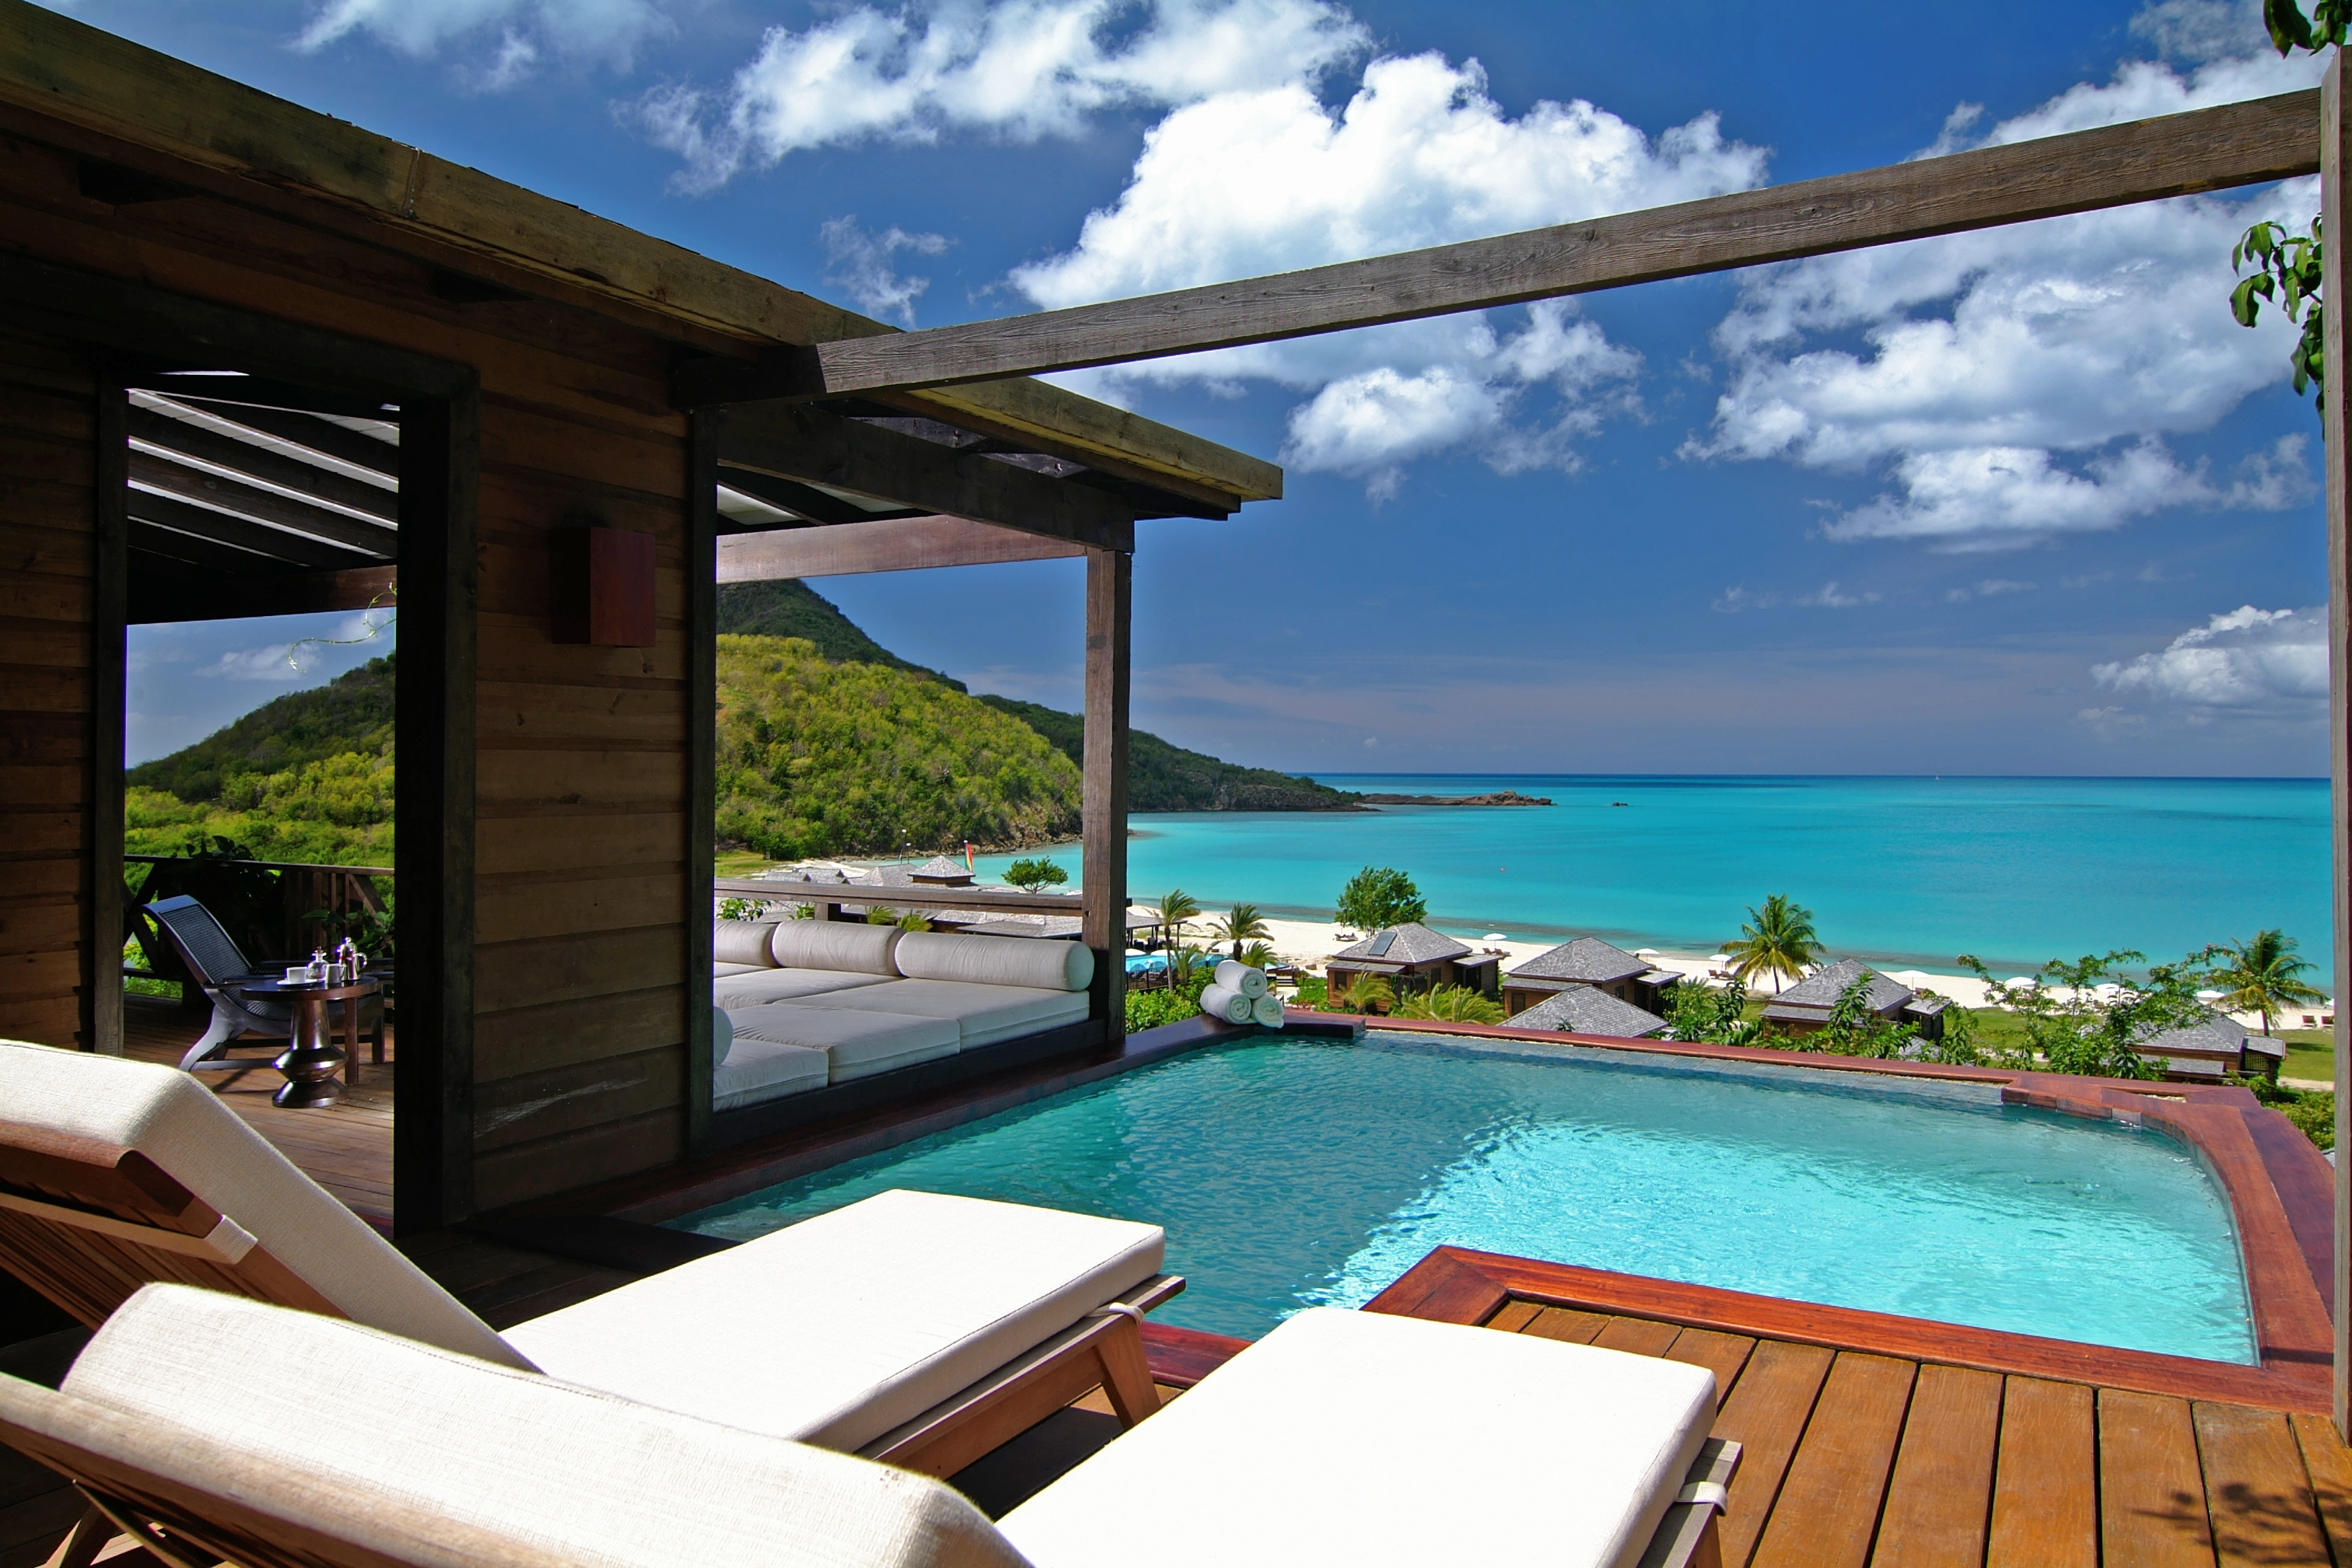 Antigua Honeymoon Hillside Cottage Plunge Pool And Deck